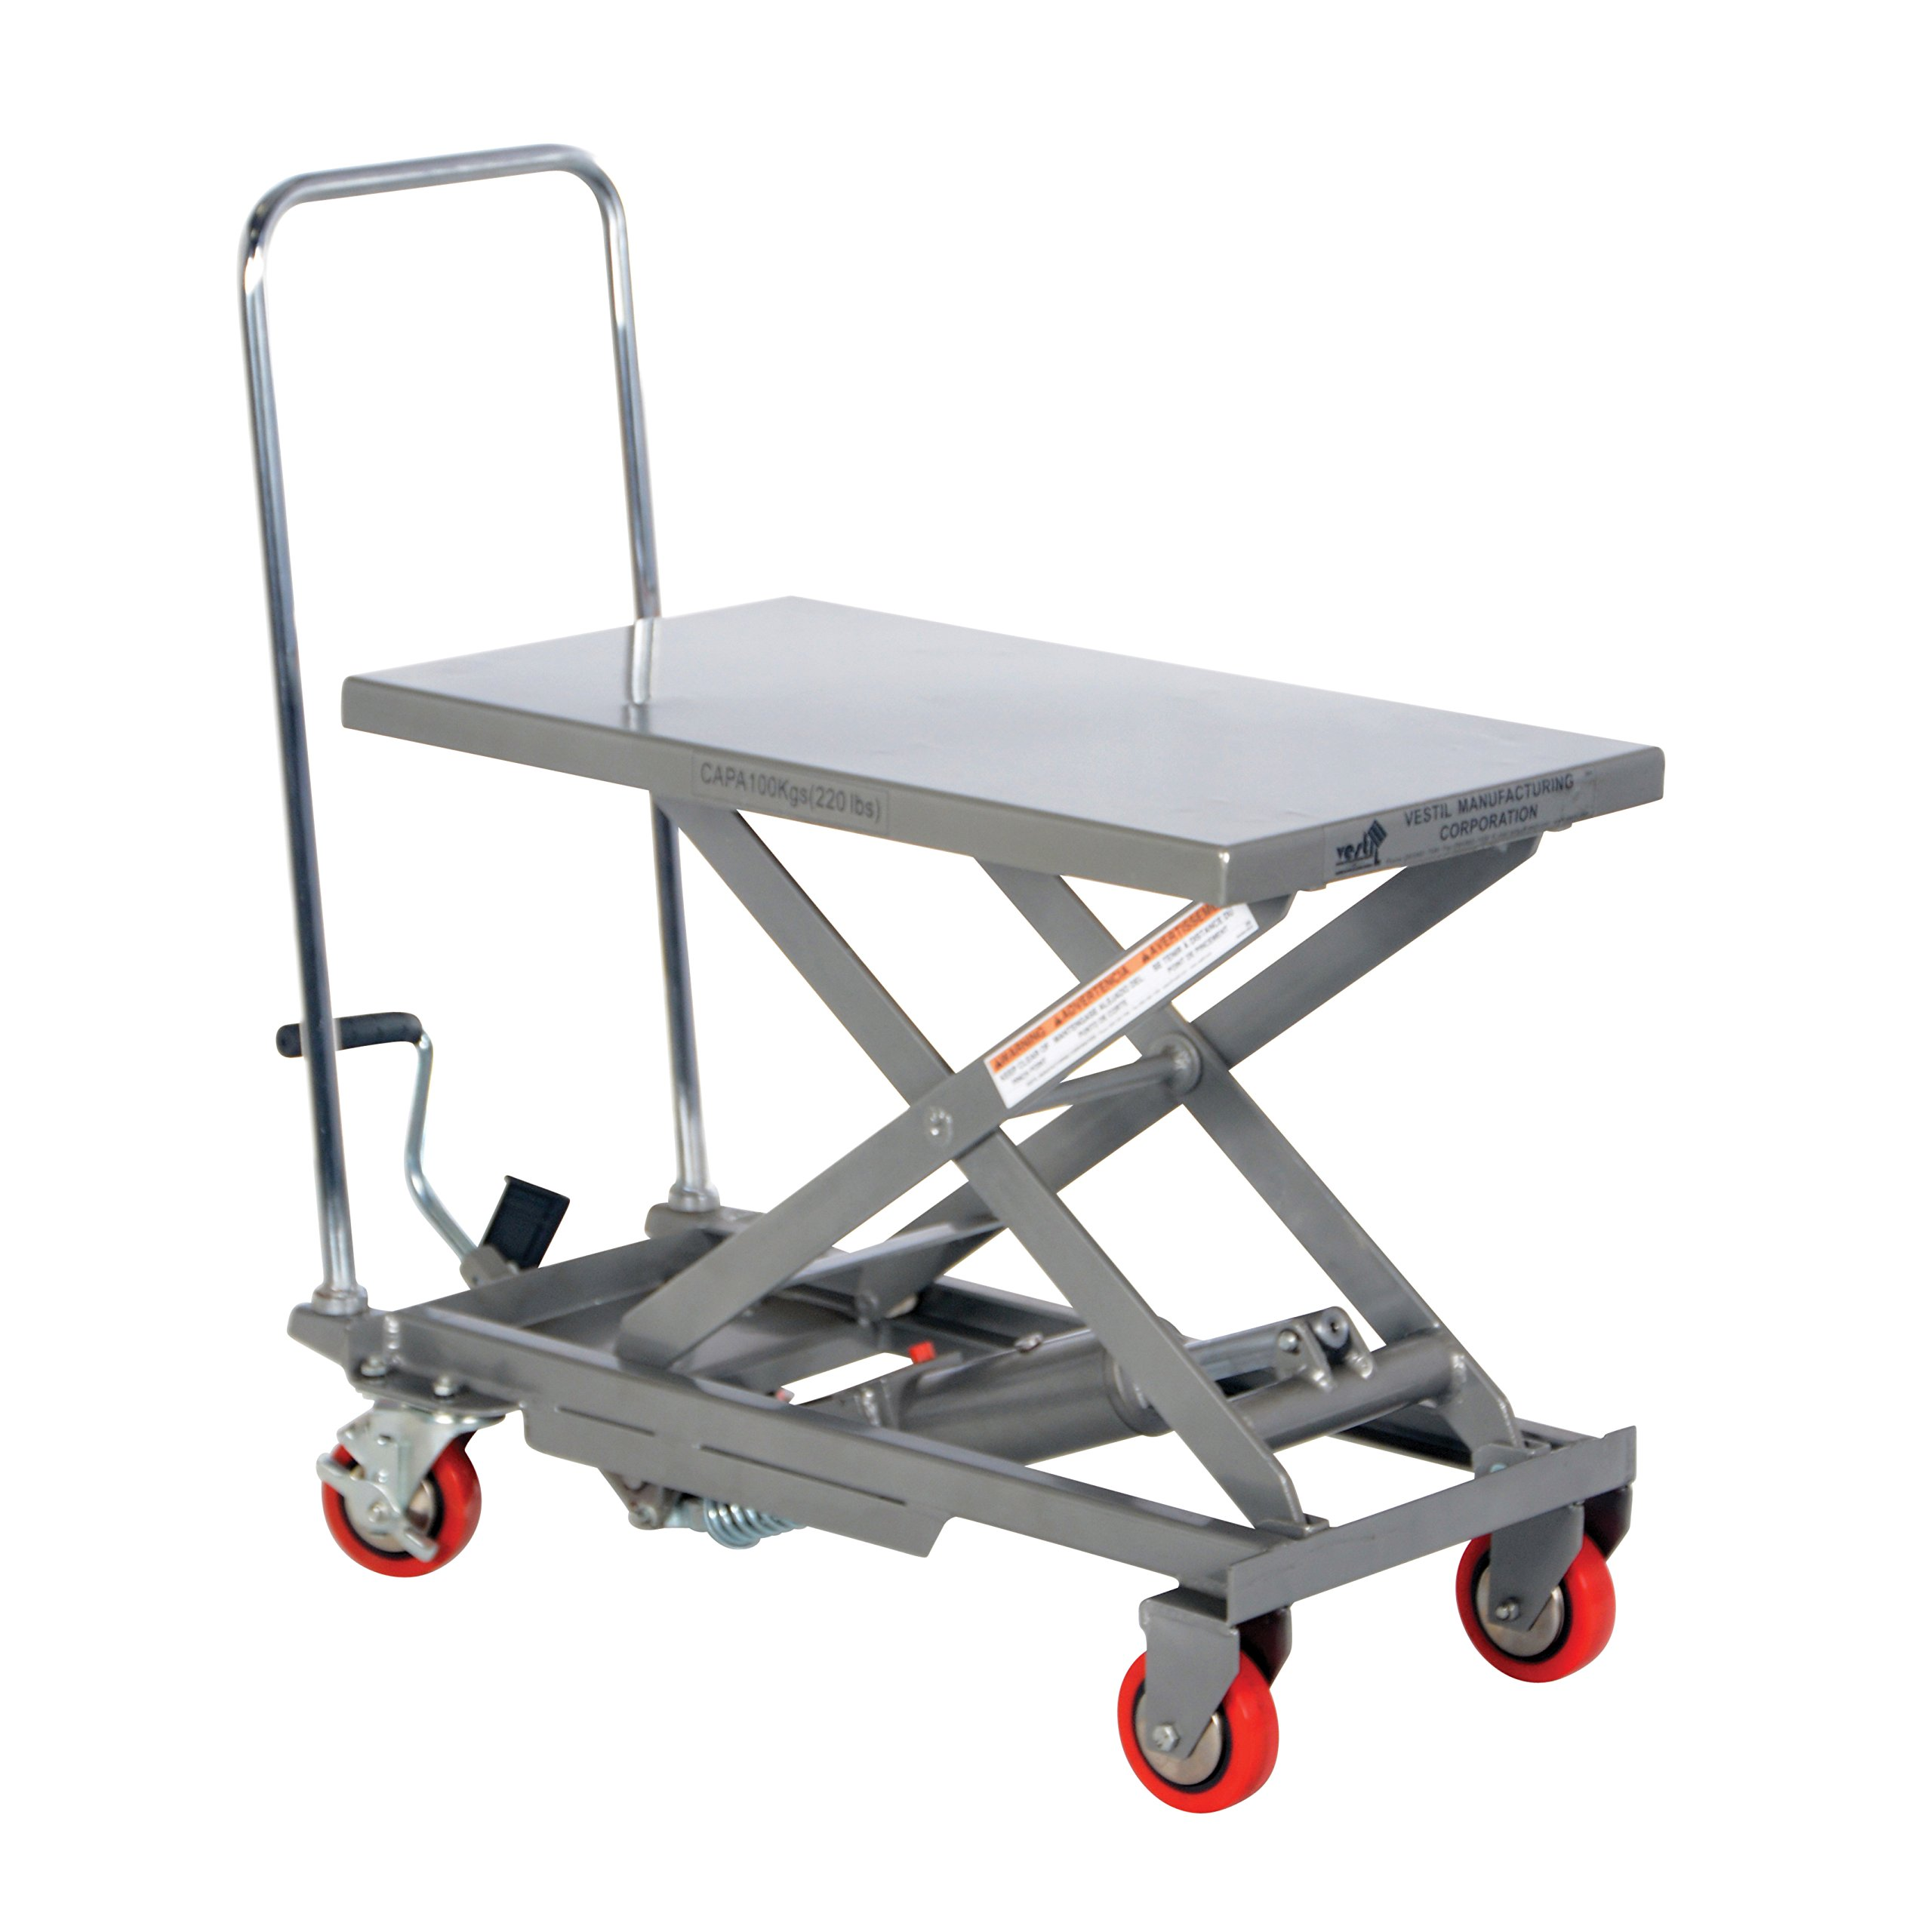 Vestil CART-200-ALUM Aluminum Elevating Cart, 220 lb. Capacity, 15.75'' x 27''